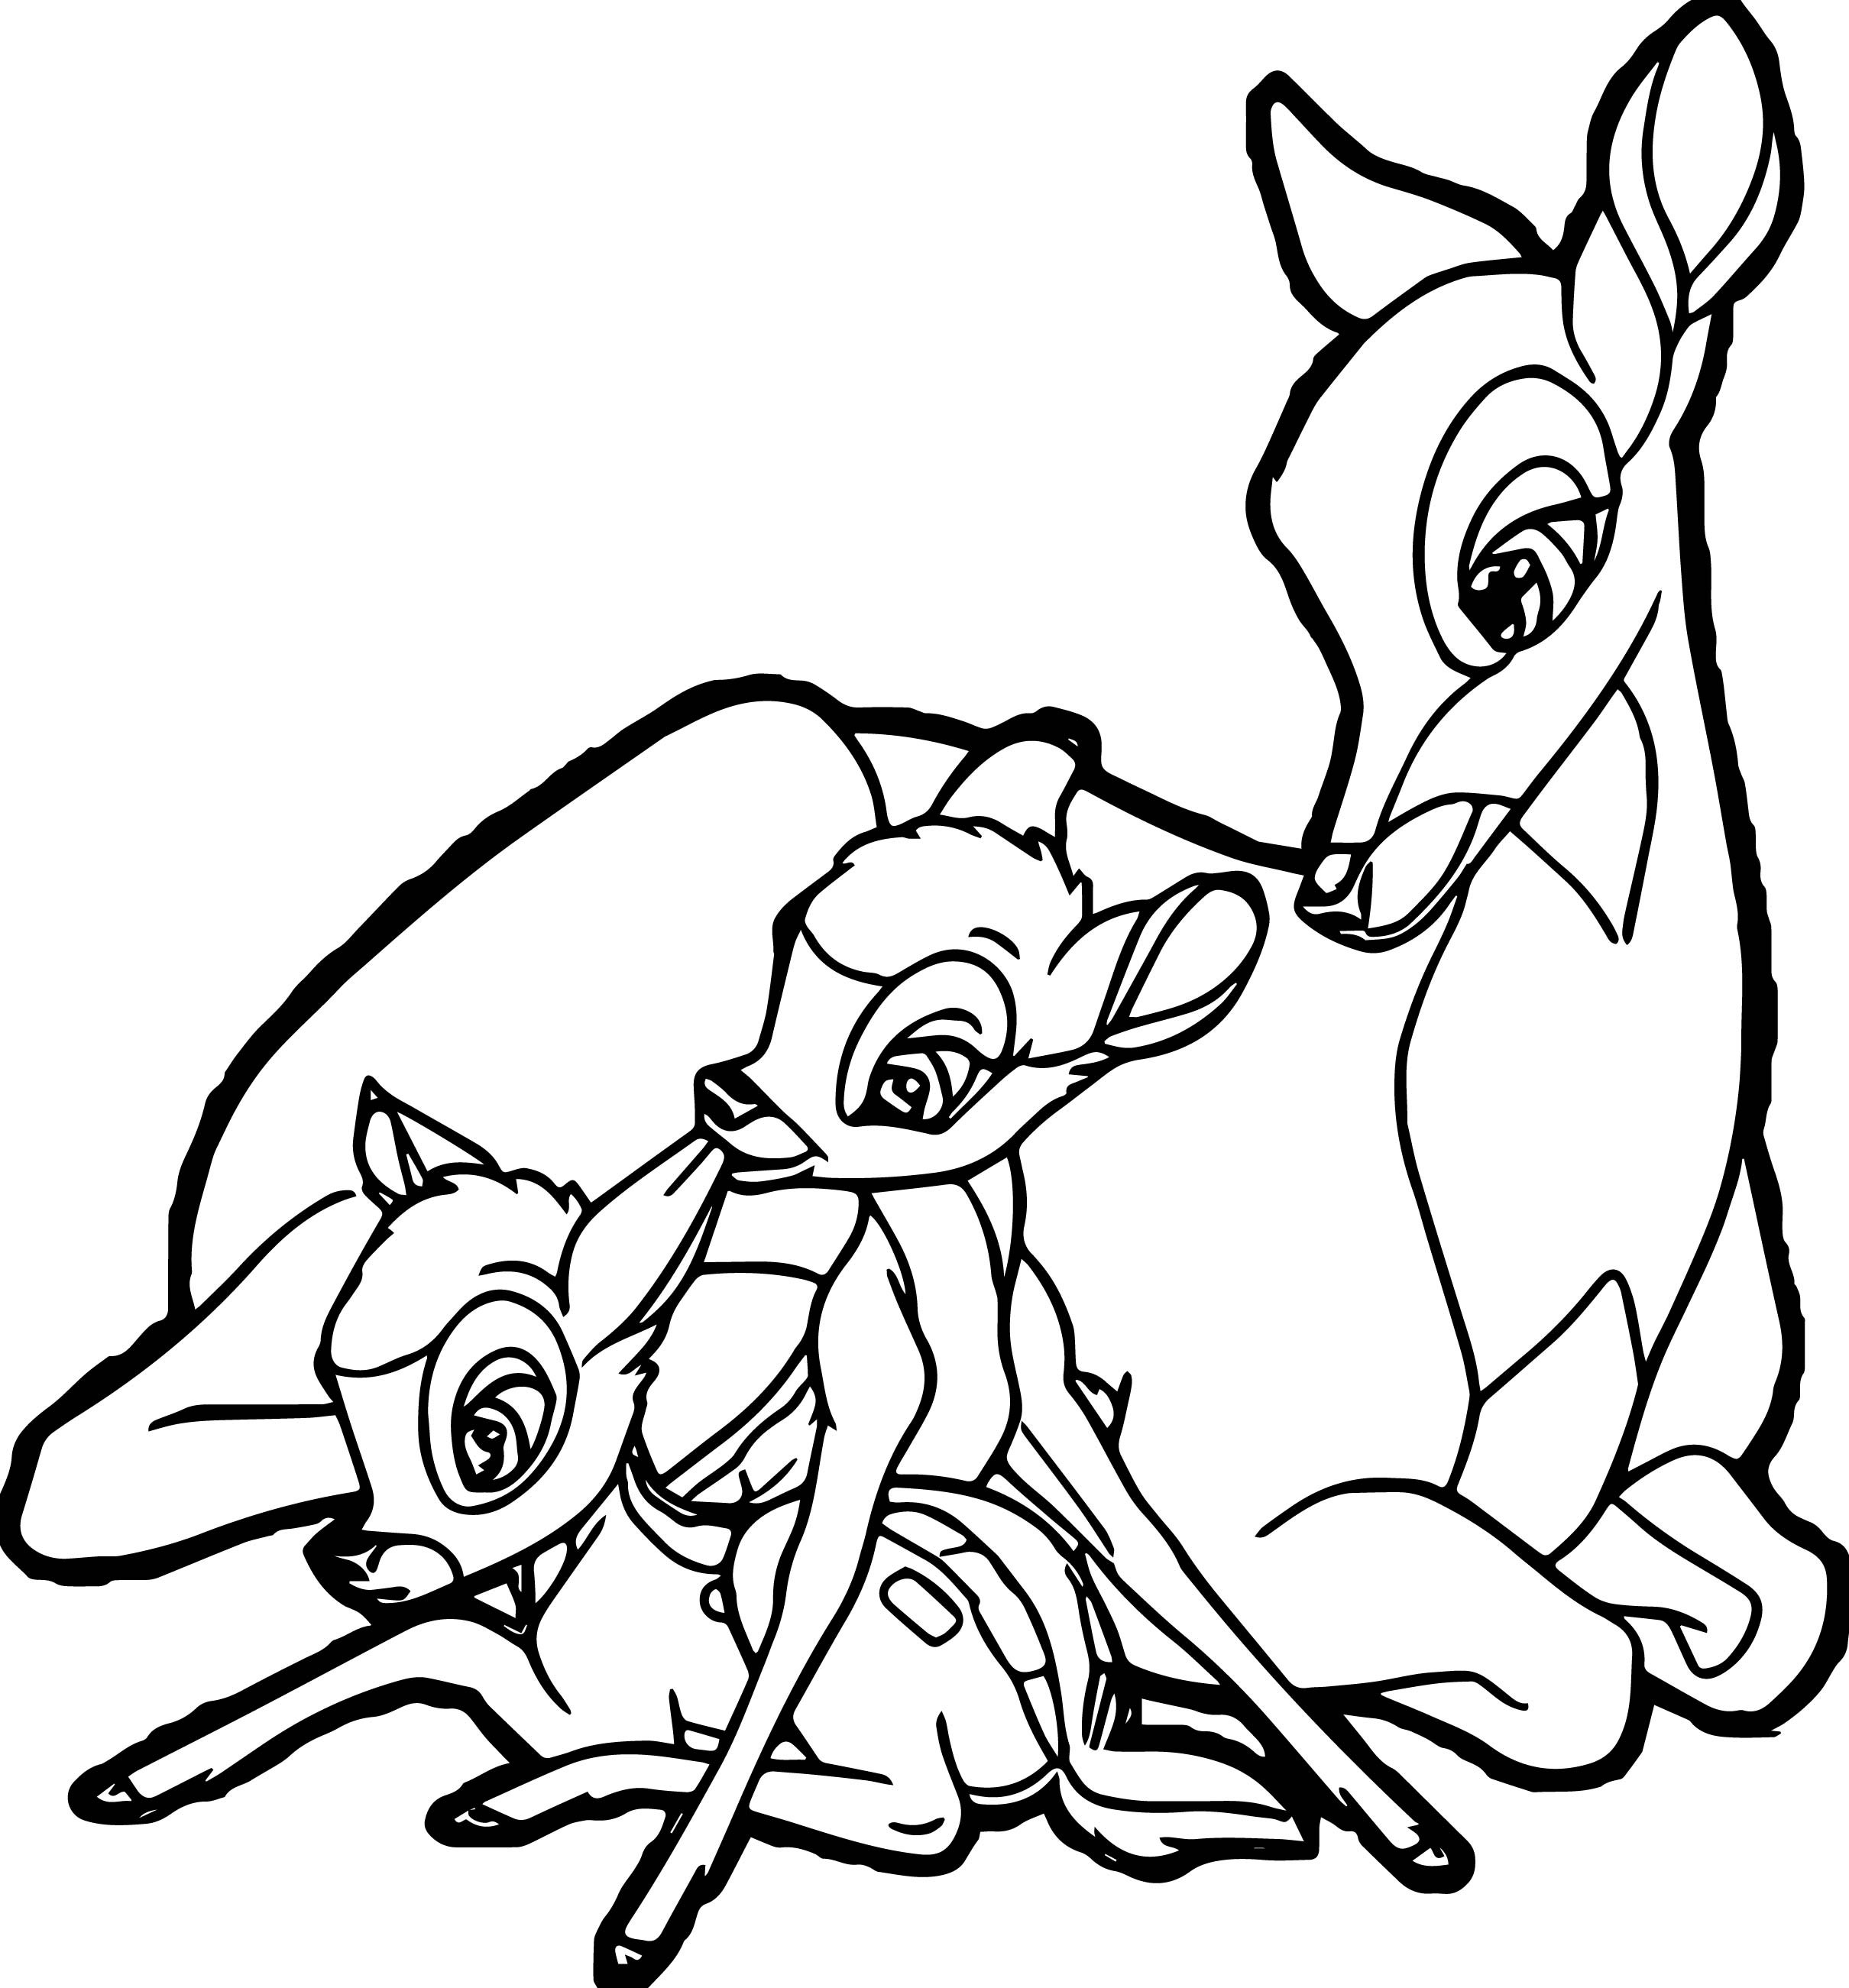 2420x2602 Bambi Coloring Pages With Friends For Kids Elegant Bambi Mother